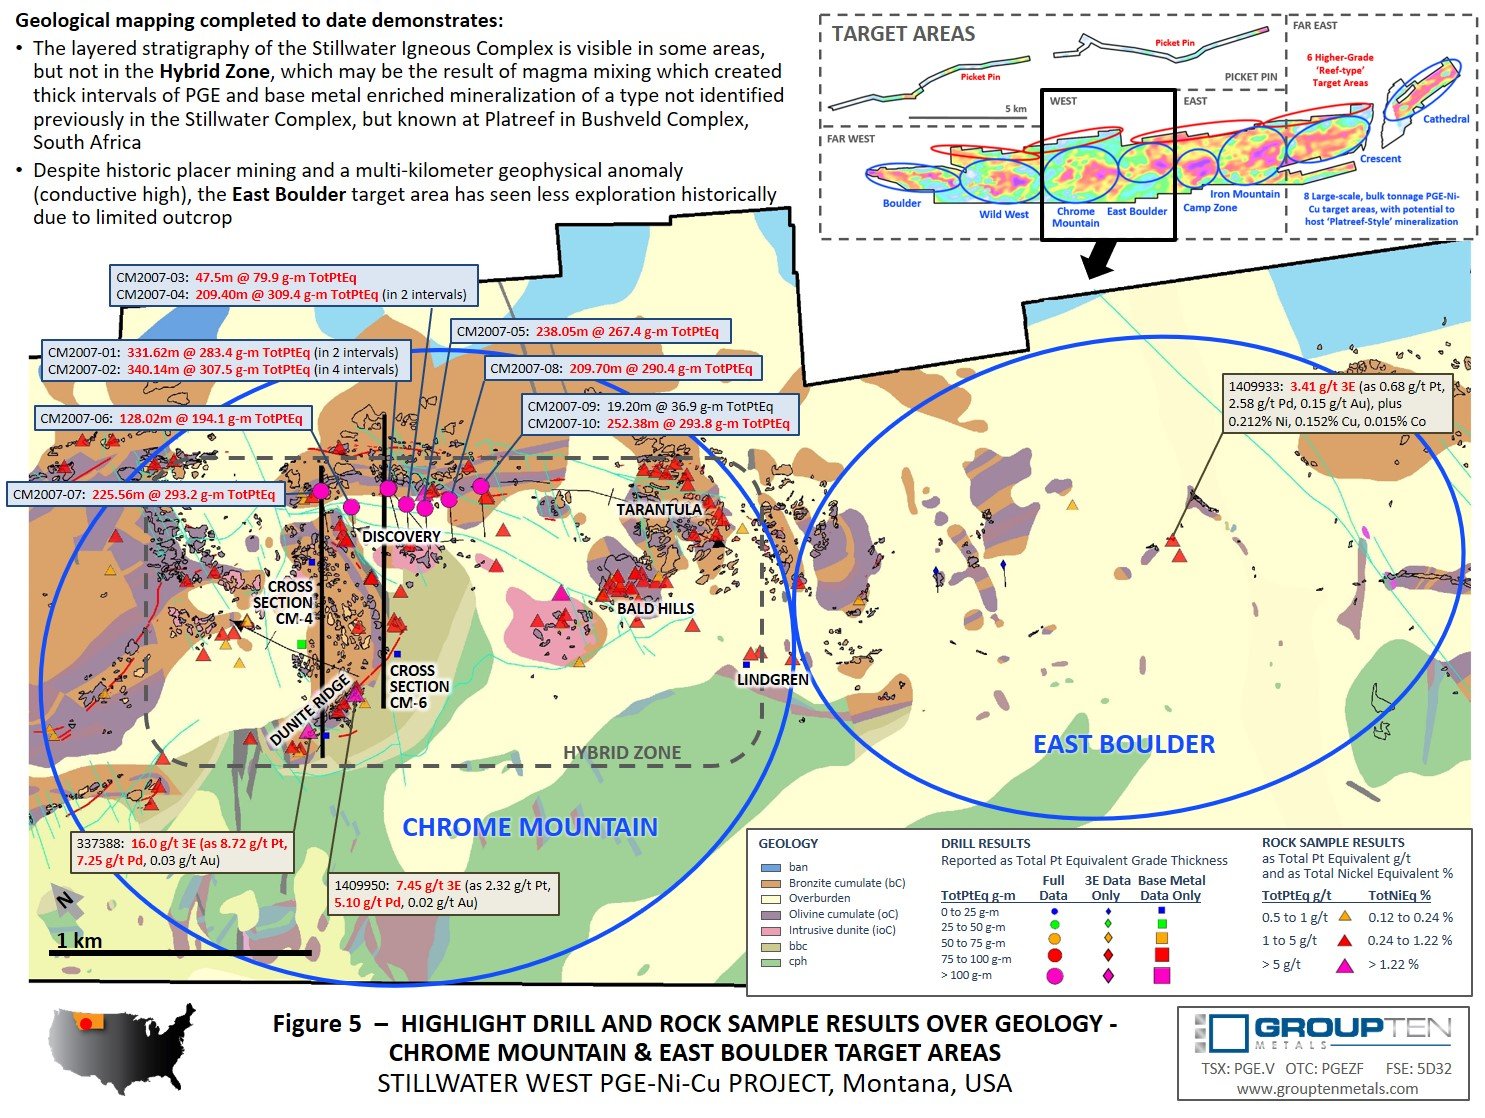 Figure 5  –  Highlight Drill and Rock Sample Results Over Geology - Chrome Mountain & East Boulder Target Areas